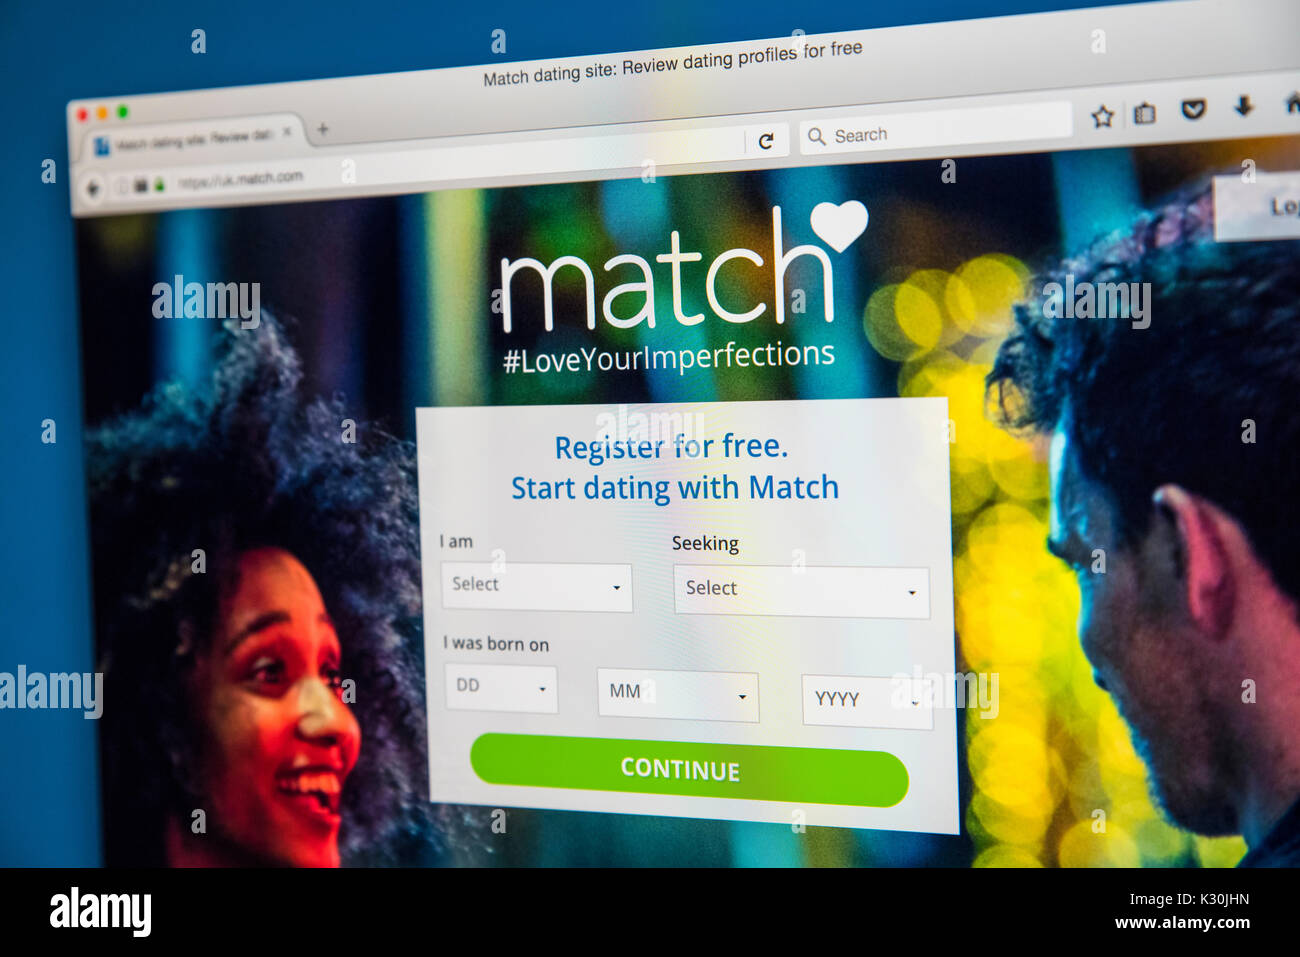 Austin online dating match service